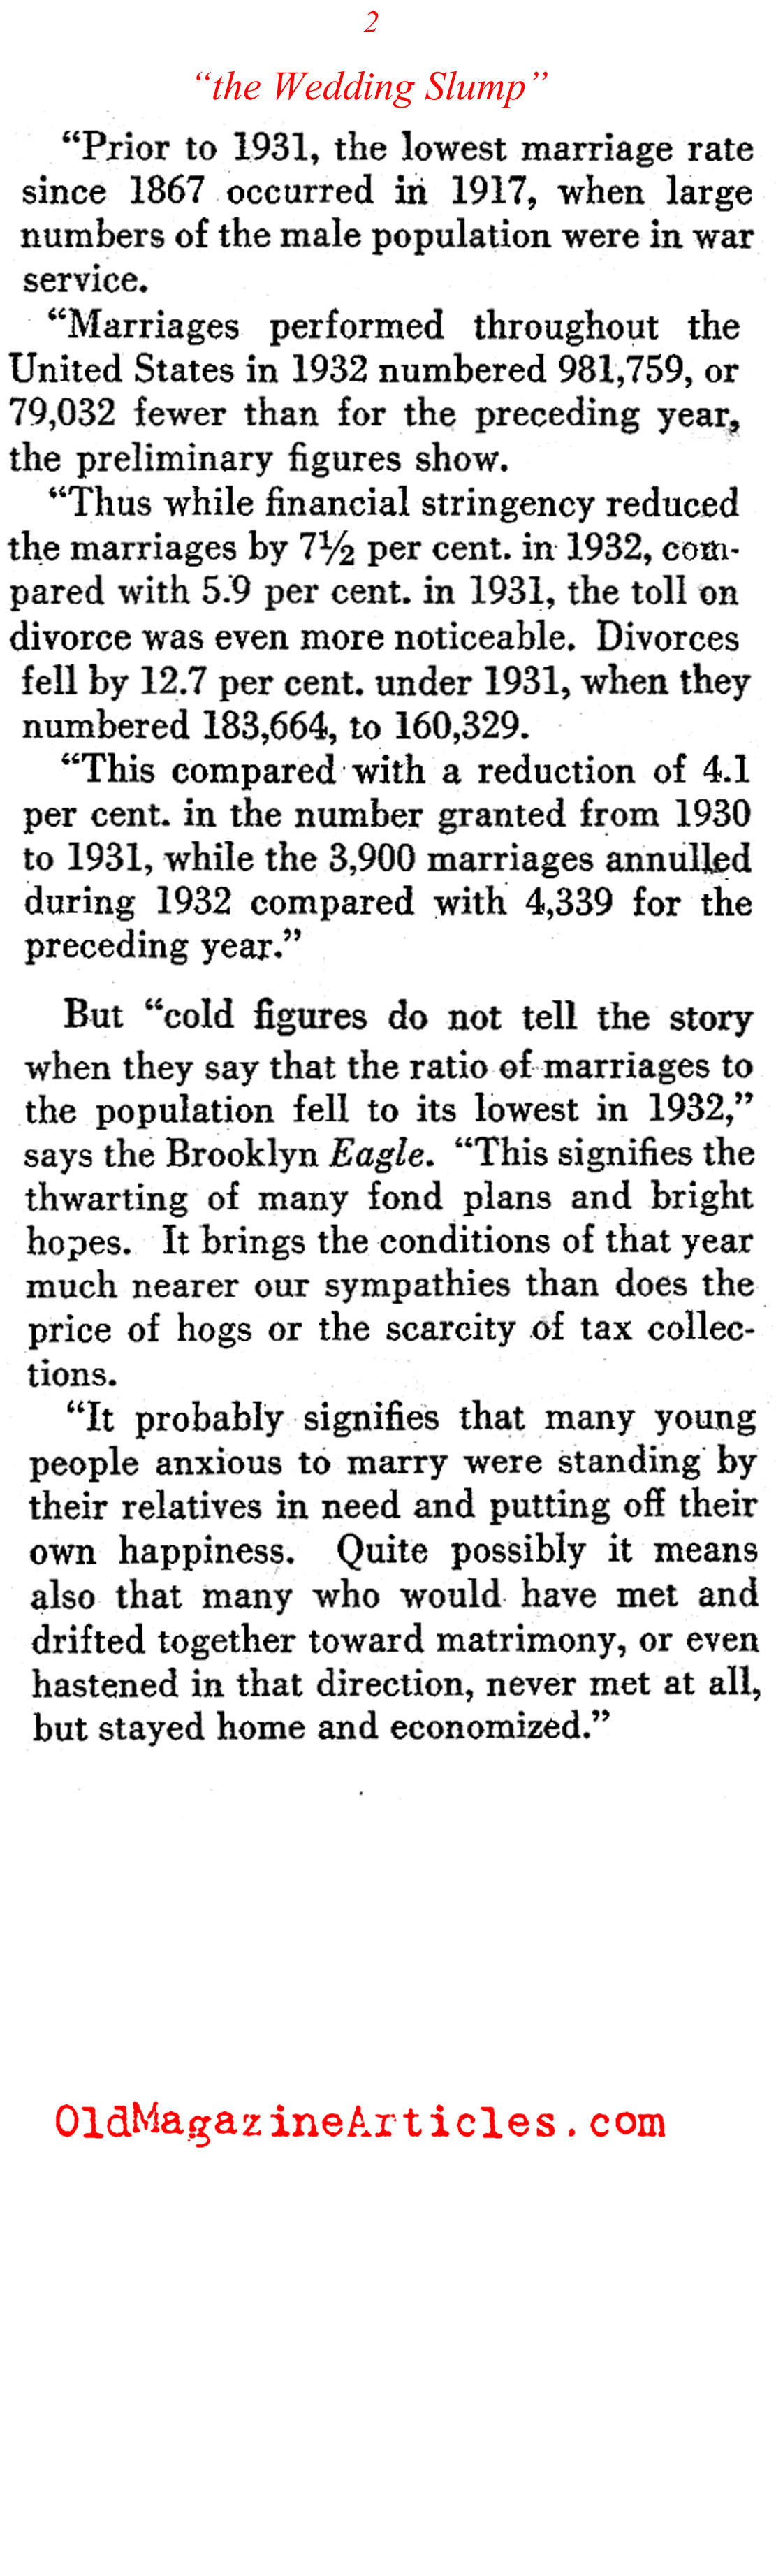 The Great Depression Reduced the Number of Marriages (The Pathfinder, 1933)